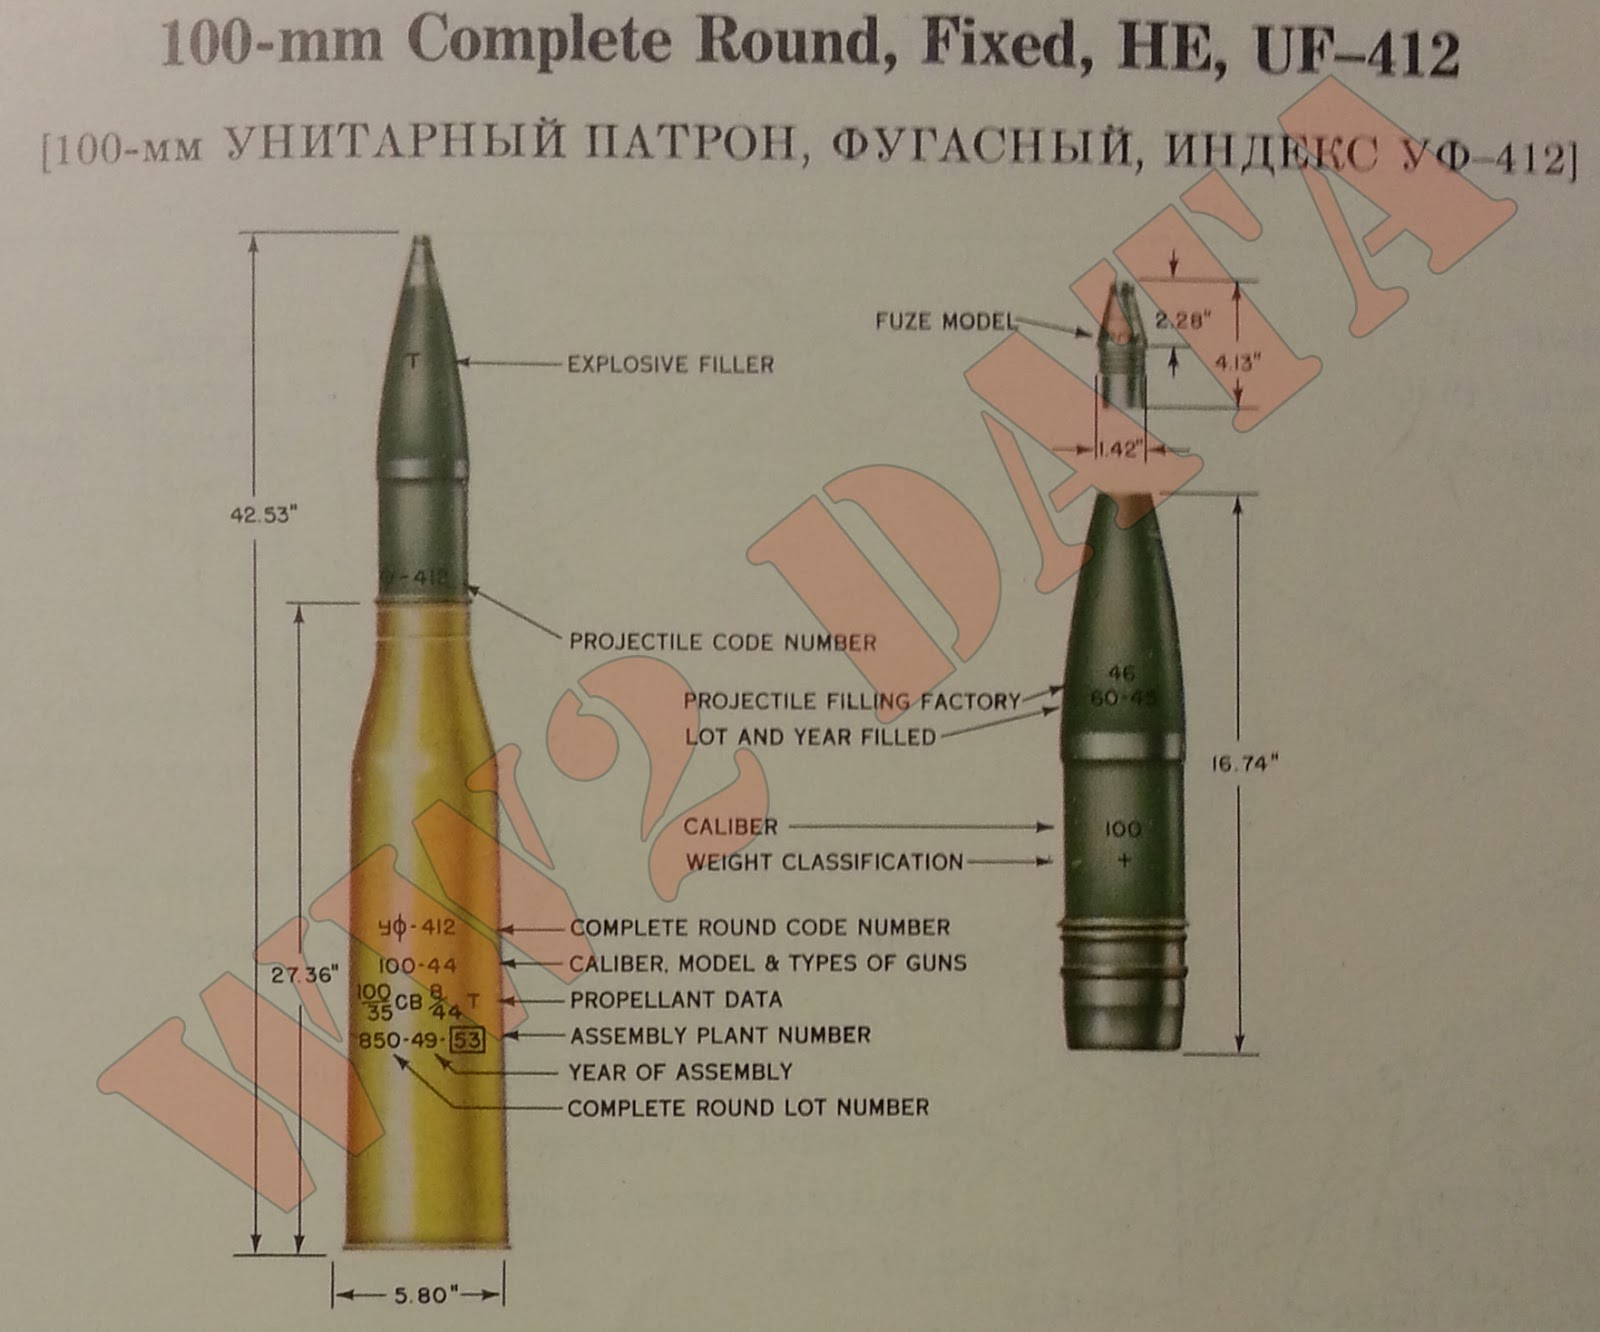 Ww2 Equipment Data Soviet Explosive Ordnance 85mm And